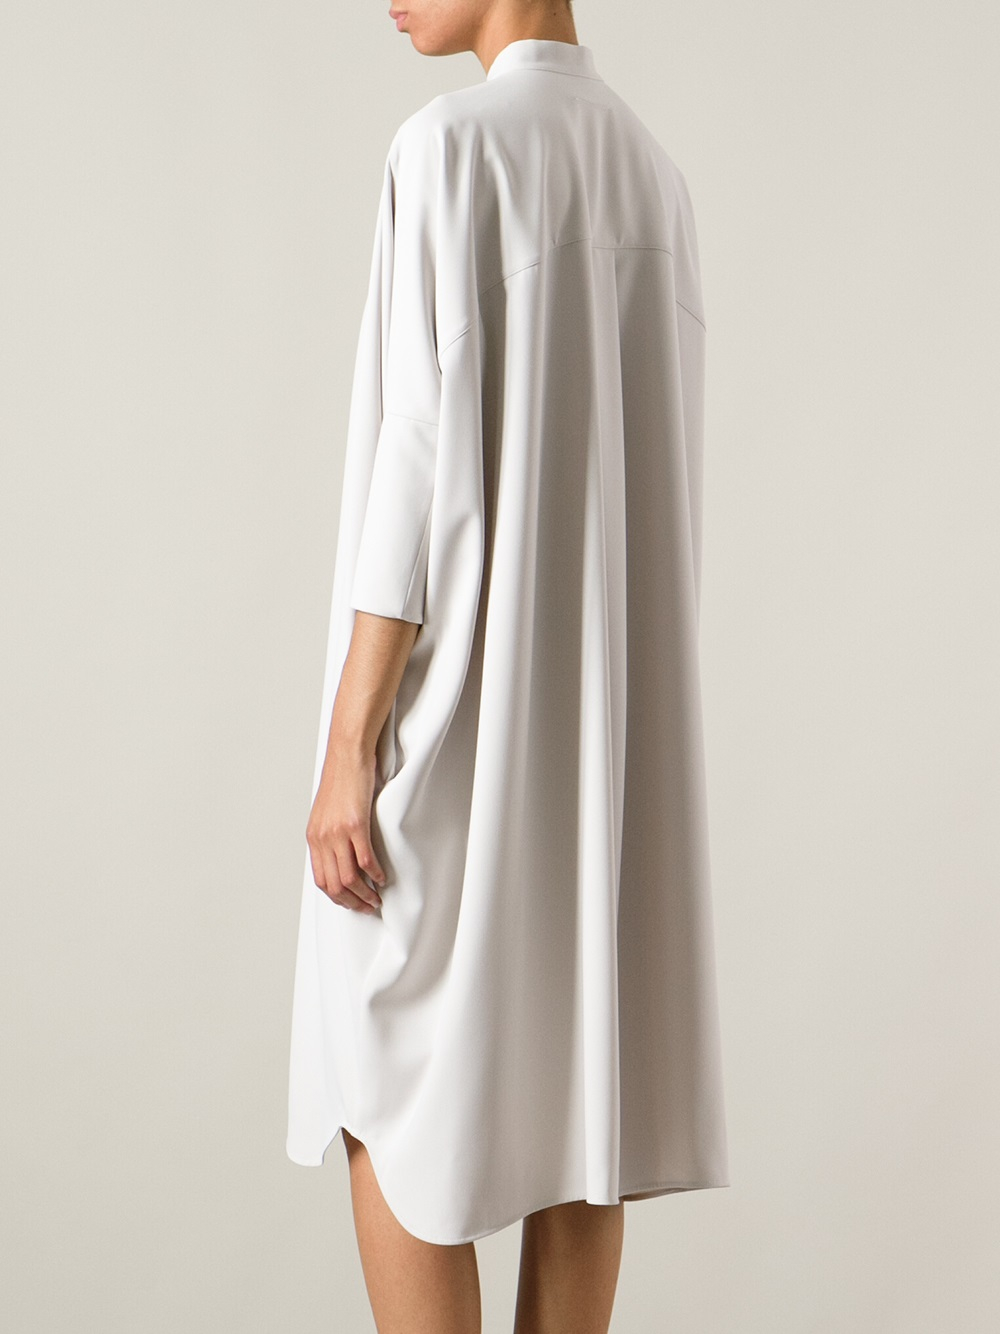 Lyst mm6 by maison martin margiela poli oversize dress for Mm6 maison margiela